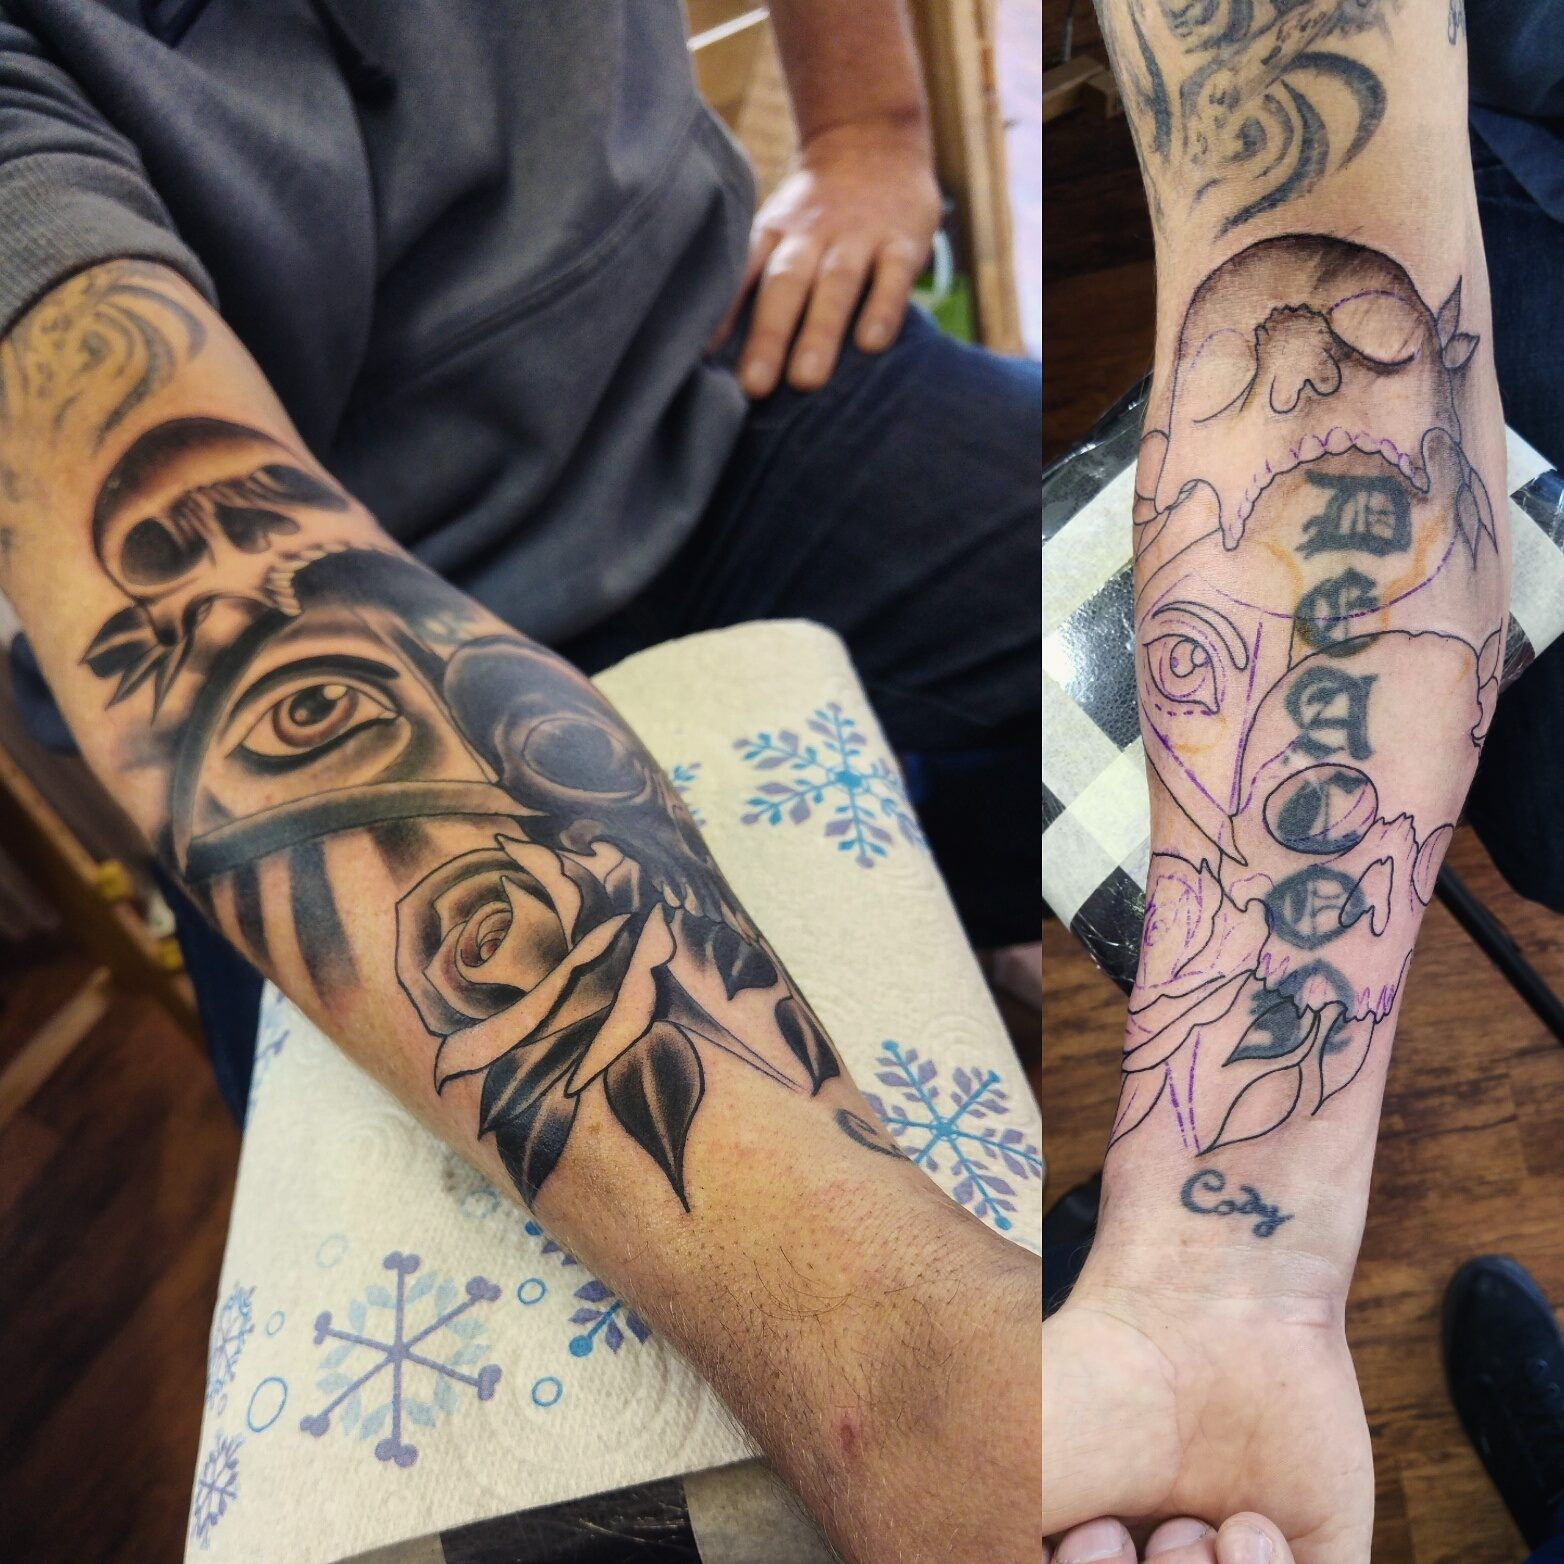 yoppul investigates The rise of cover up tattoos on the